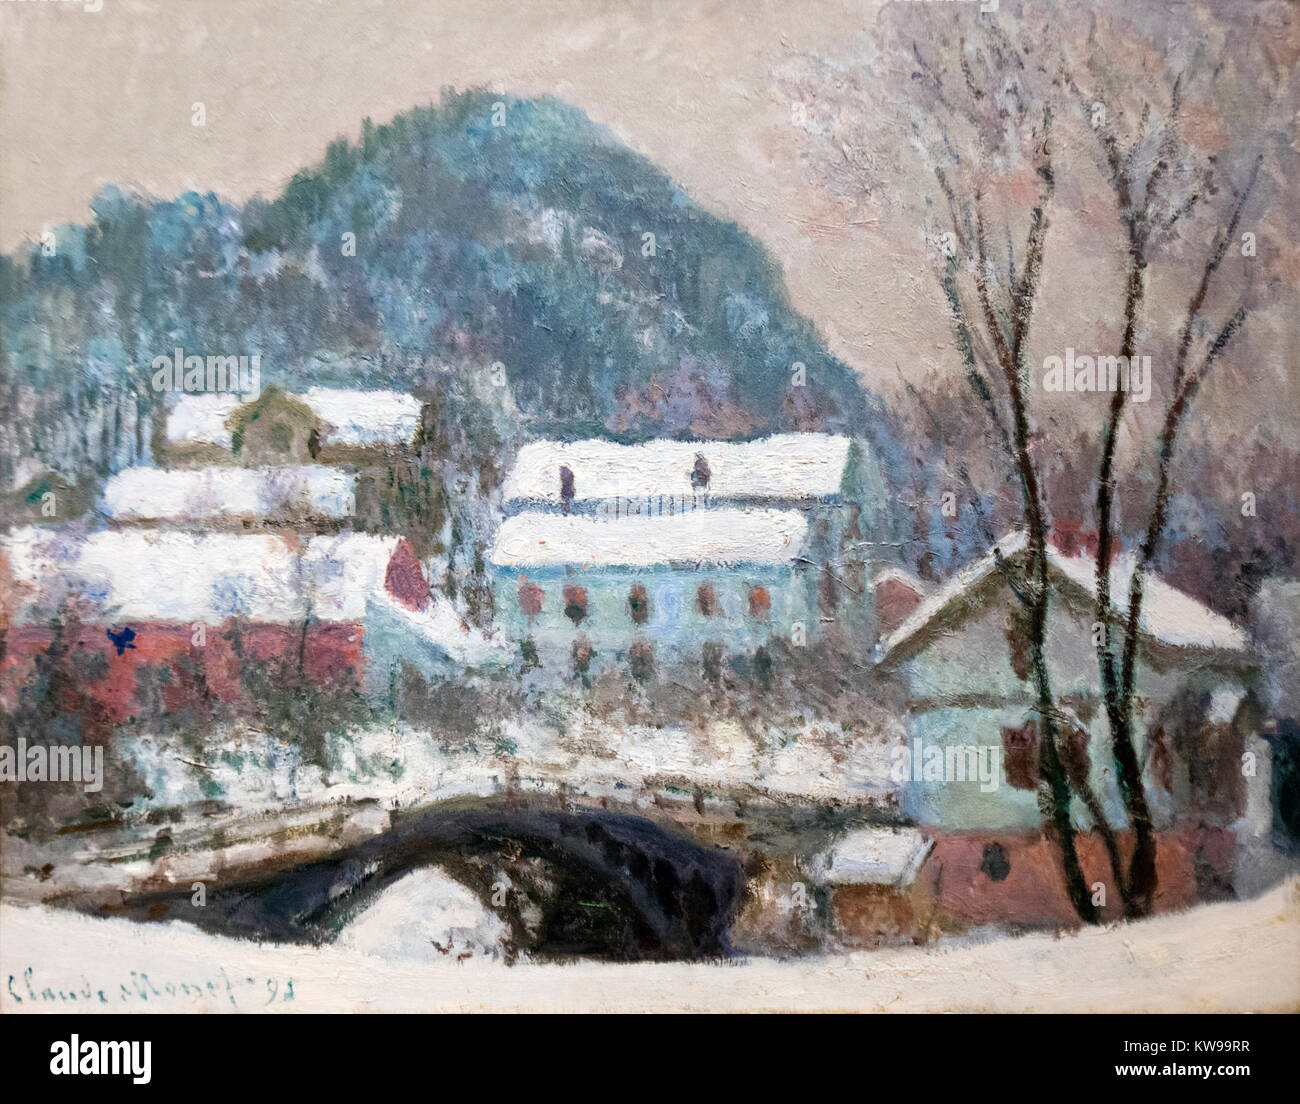 Claude Monet Paintings High Resolution Stock Photography And